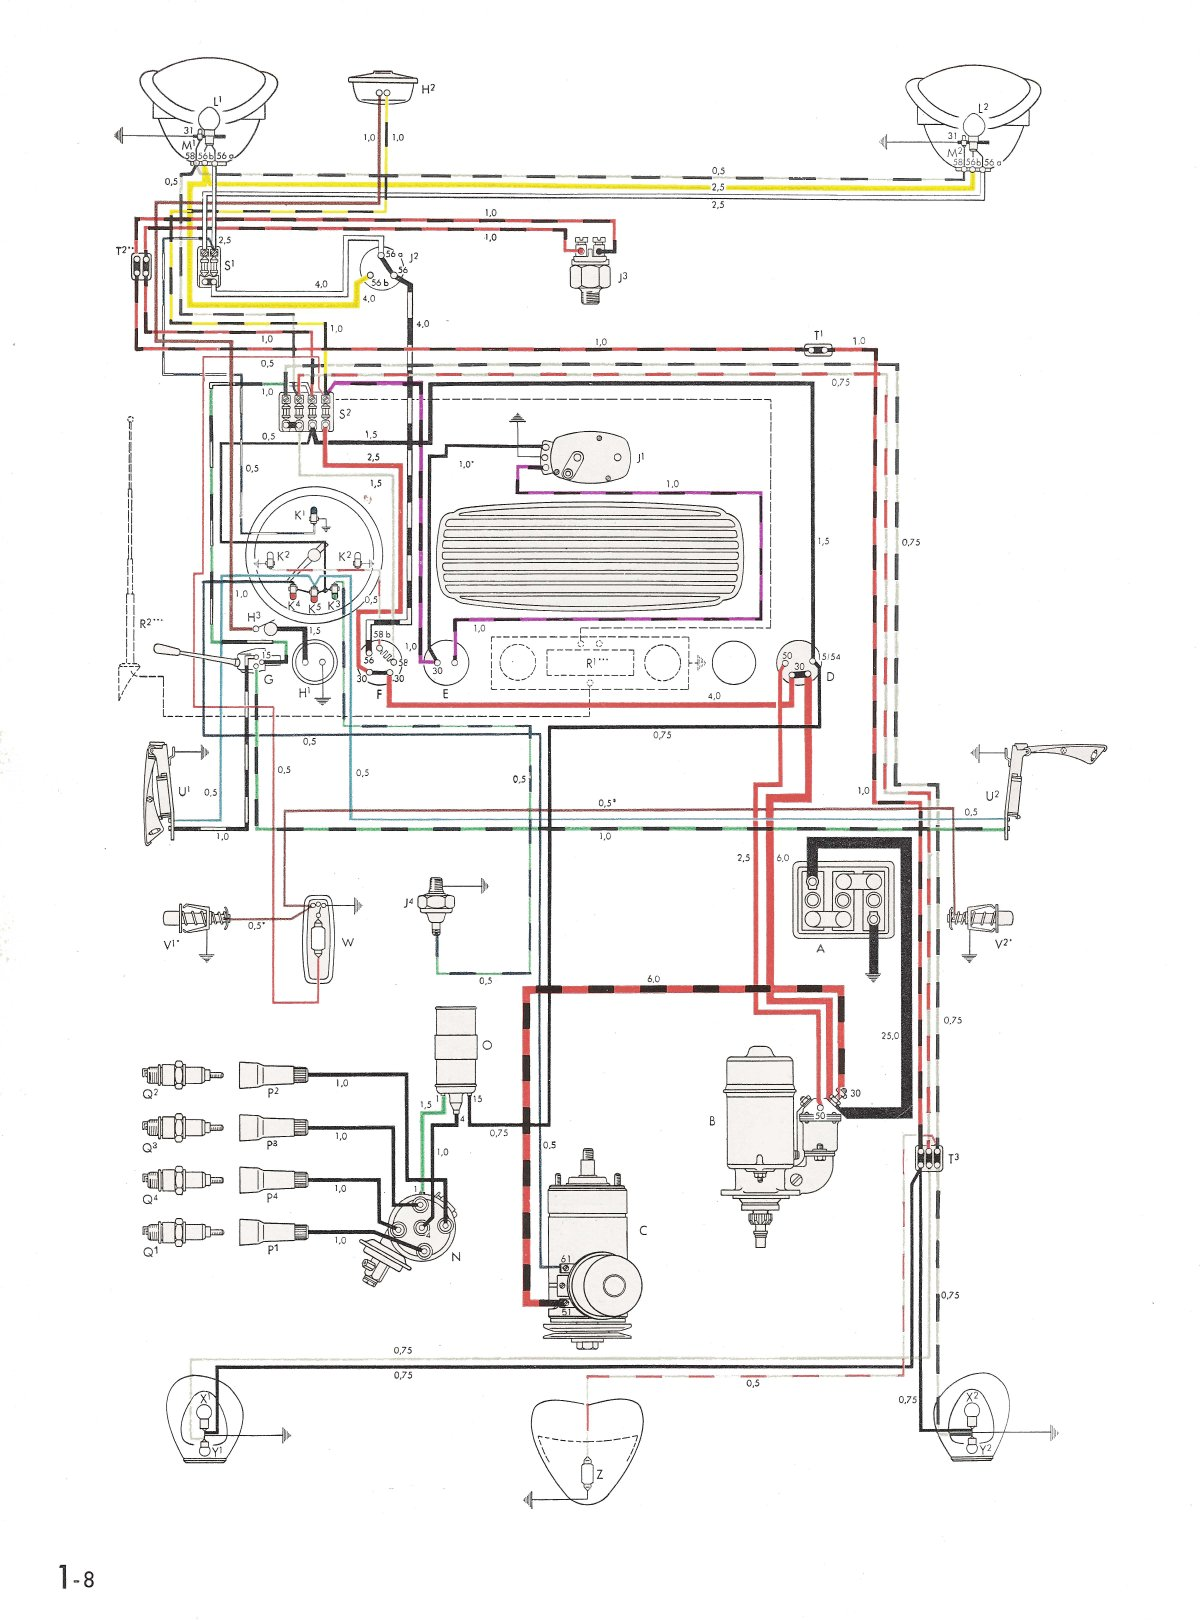 Bug on 1970 Charger Wiring Diagram